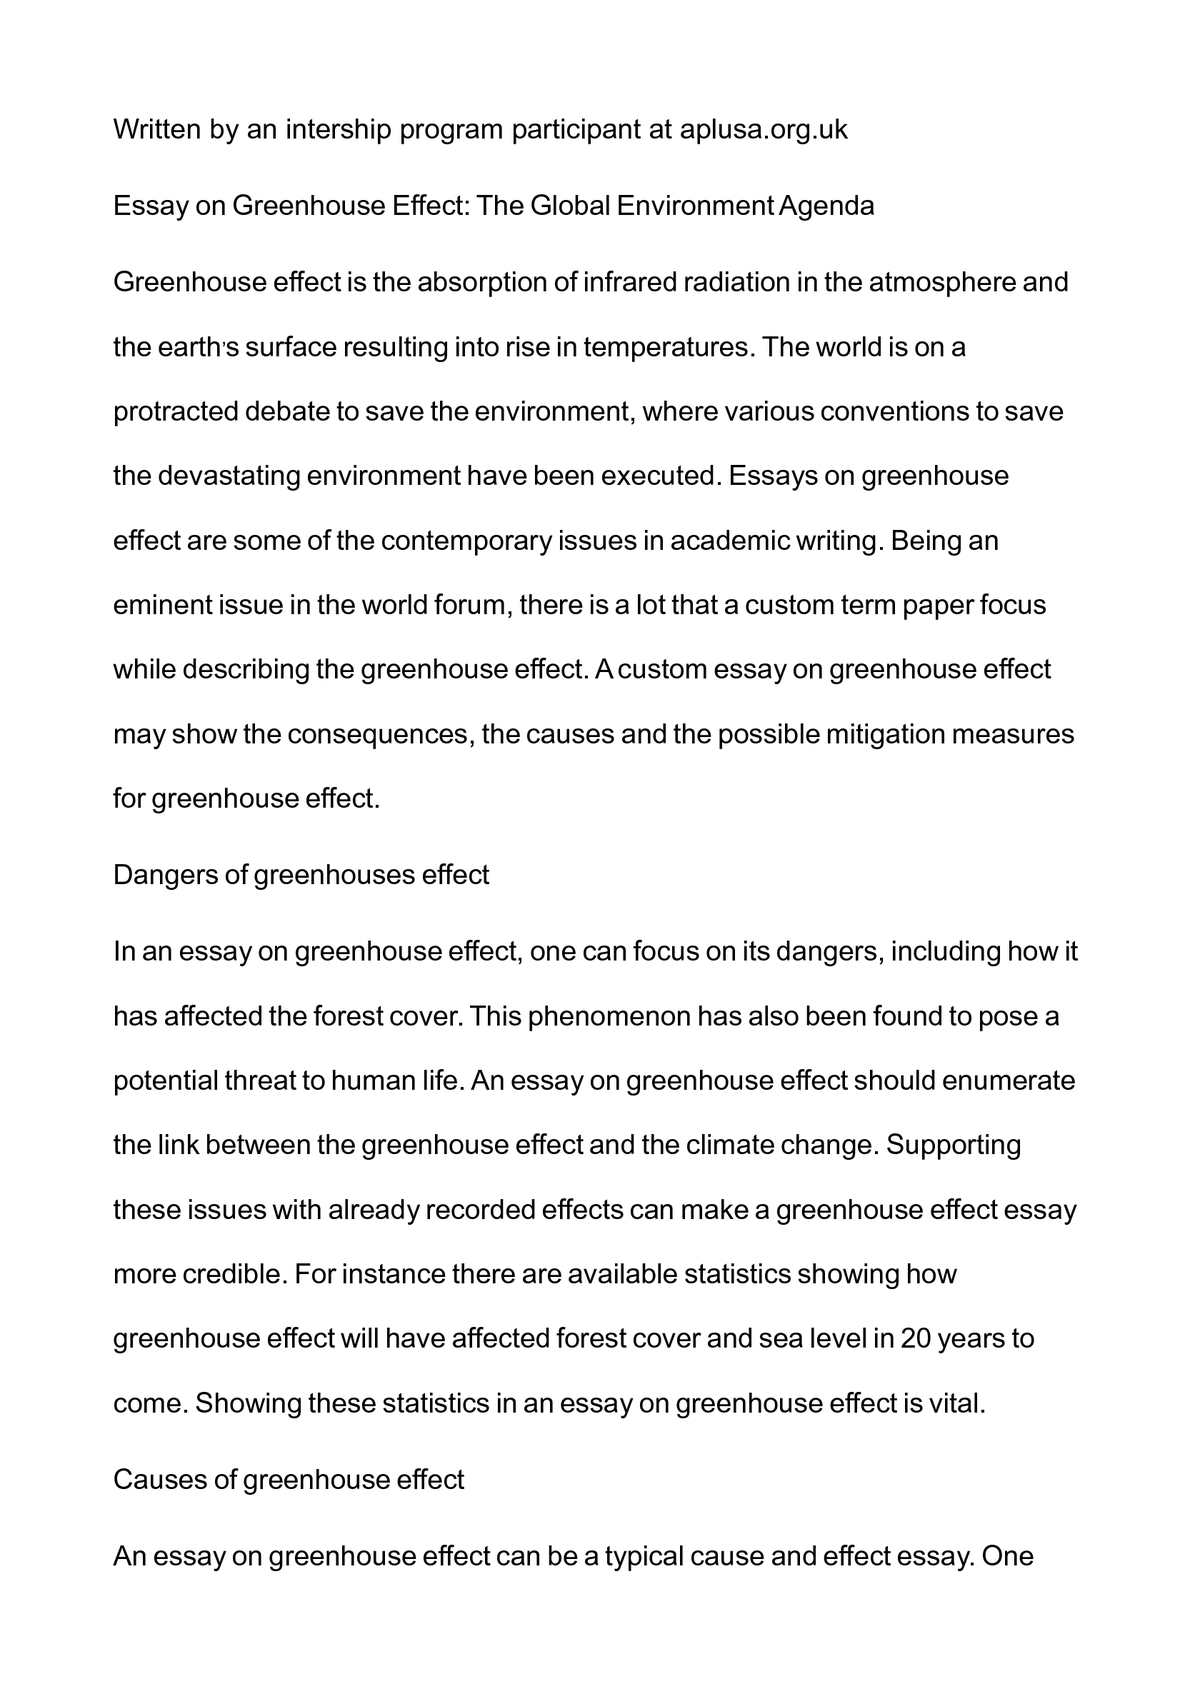 Photosynthesis Essay  High School Essays also Business Essay Format Calamo  Essay On Greenhouse Effect The Global Environment Agenda High School Essay